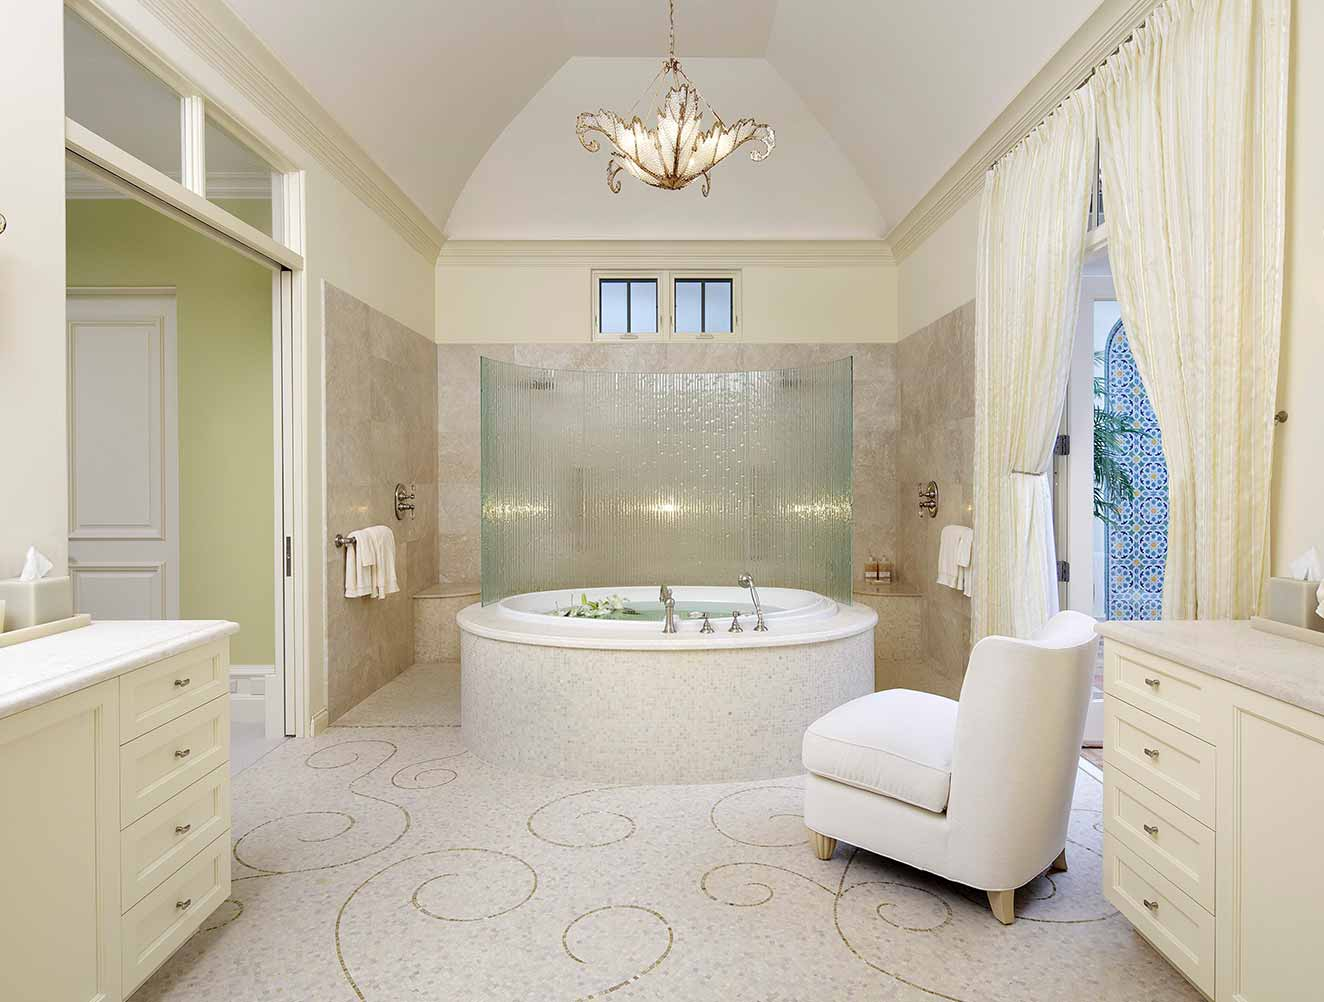 Walk-through shower in master bathroom in a Naples Florida, single family home. Designed by Kukk Architecture & Design Naples.